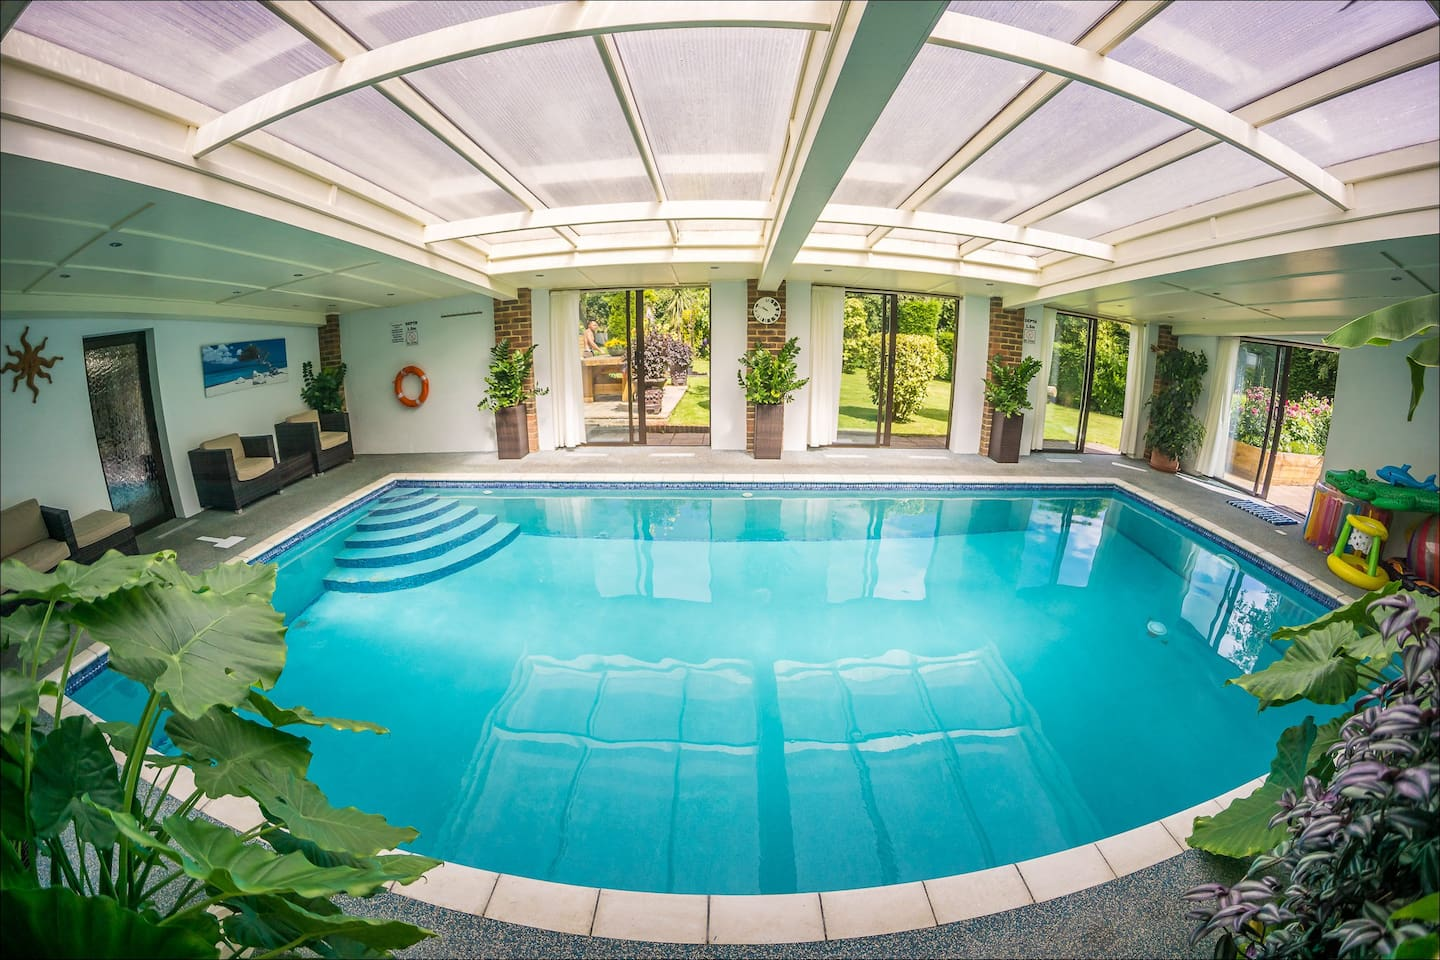 Heater indoor swimming pool - great all year rain or shine!